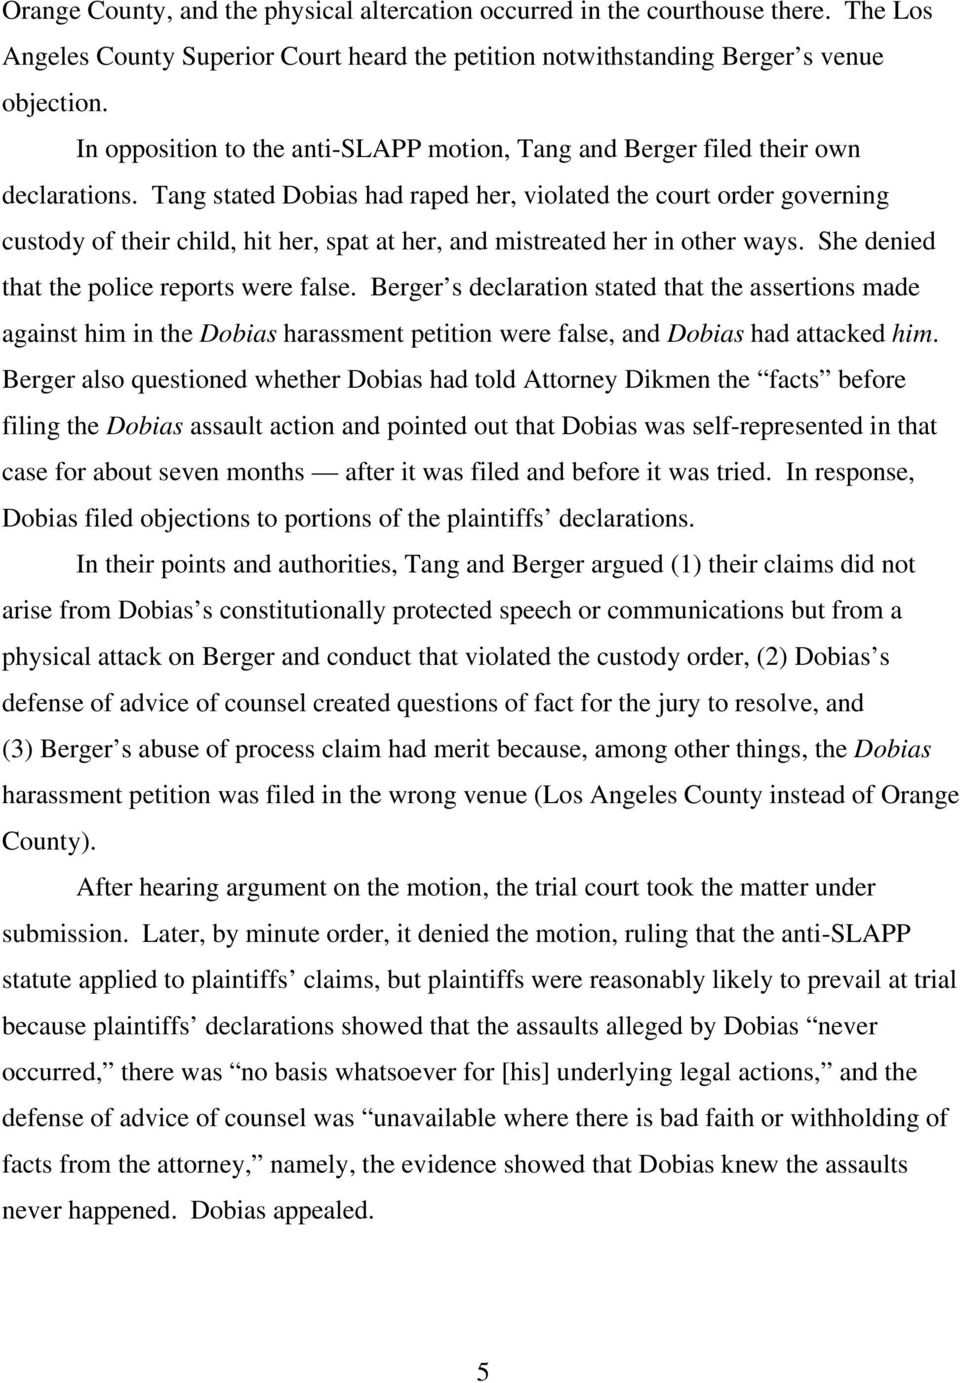 Tang stated Dobias had raped her, violated the court order governing custody of their child, hit her, spat at her, and mistreated her in other ways. She denied that the police reports were false.